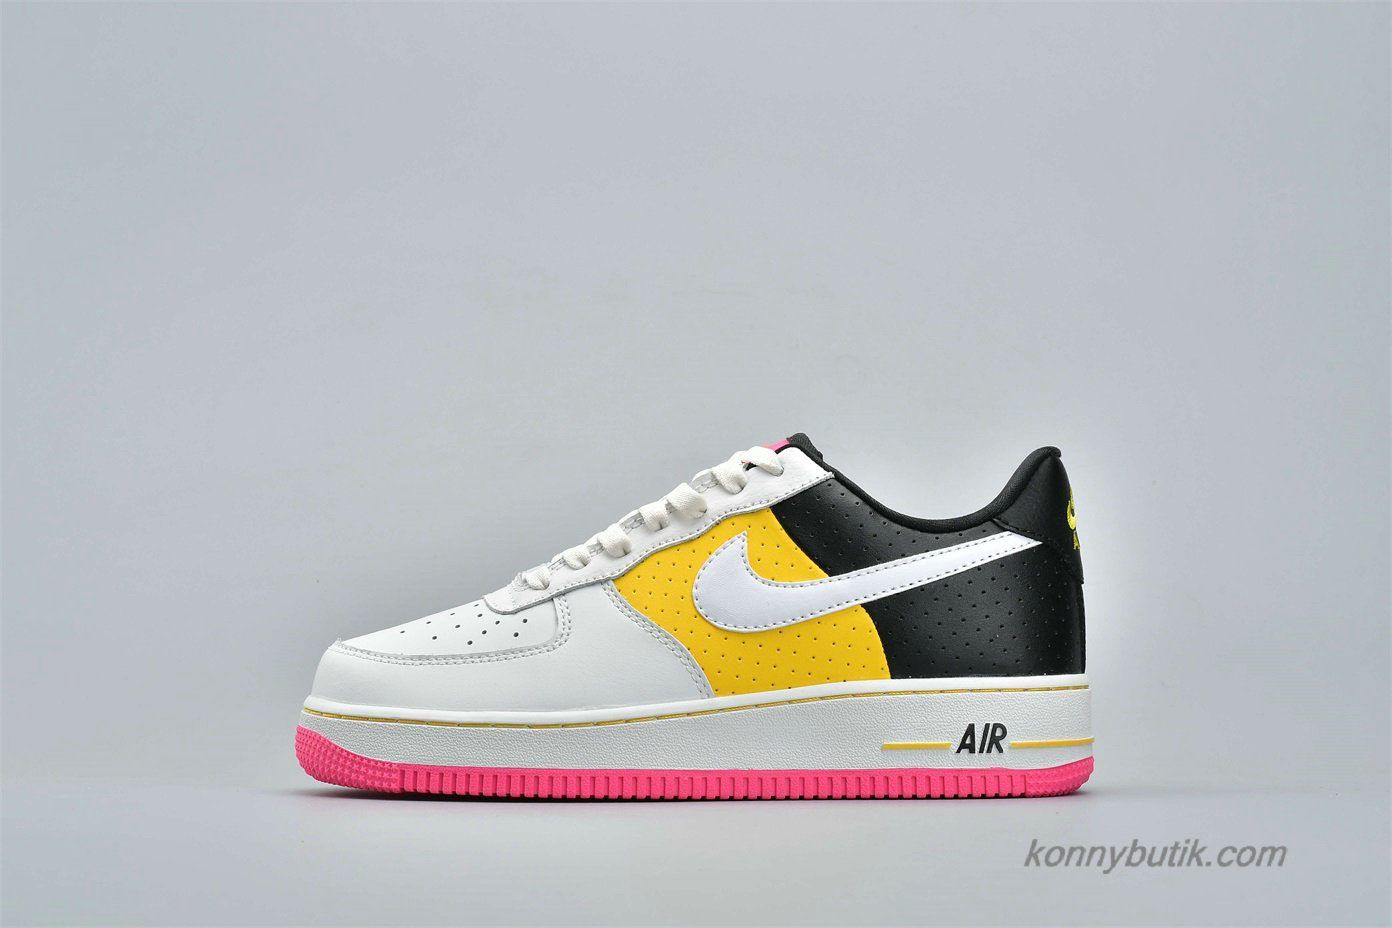 Nike Air Force 1 Low 07 SE MOTO Dame Sko Hvid / Gul / Sort (AT2583-100)